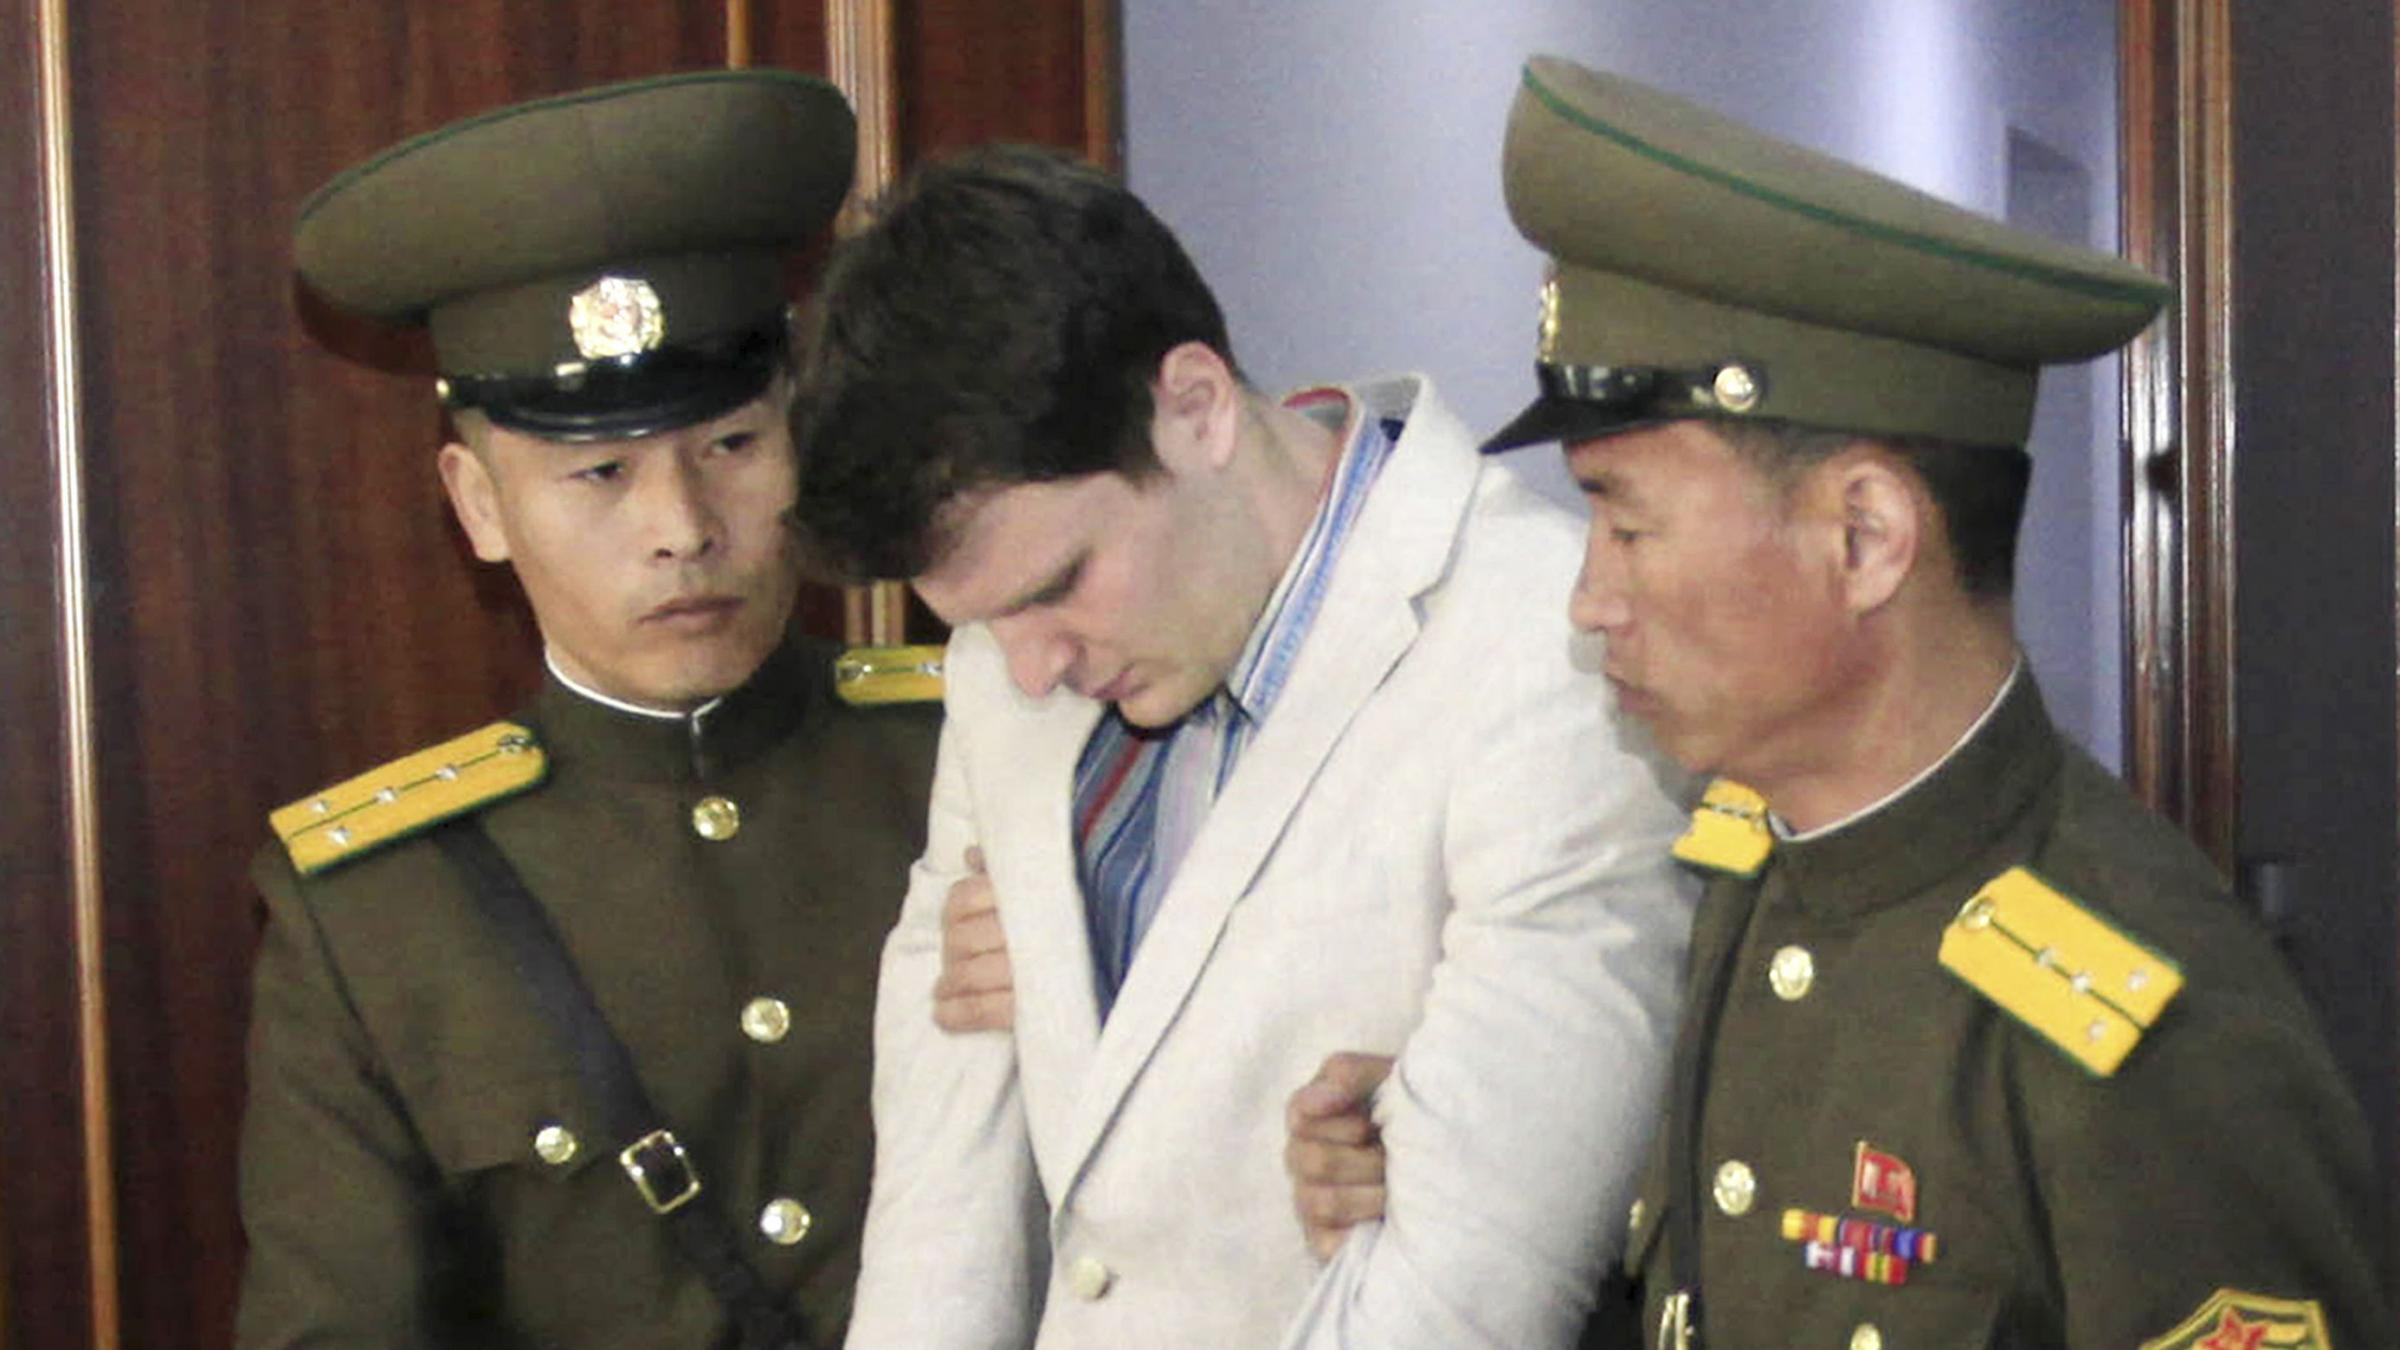 Warmbier release followed rare trip by United States official to NKorea